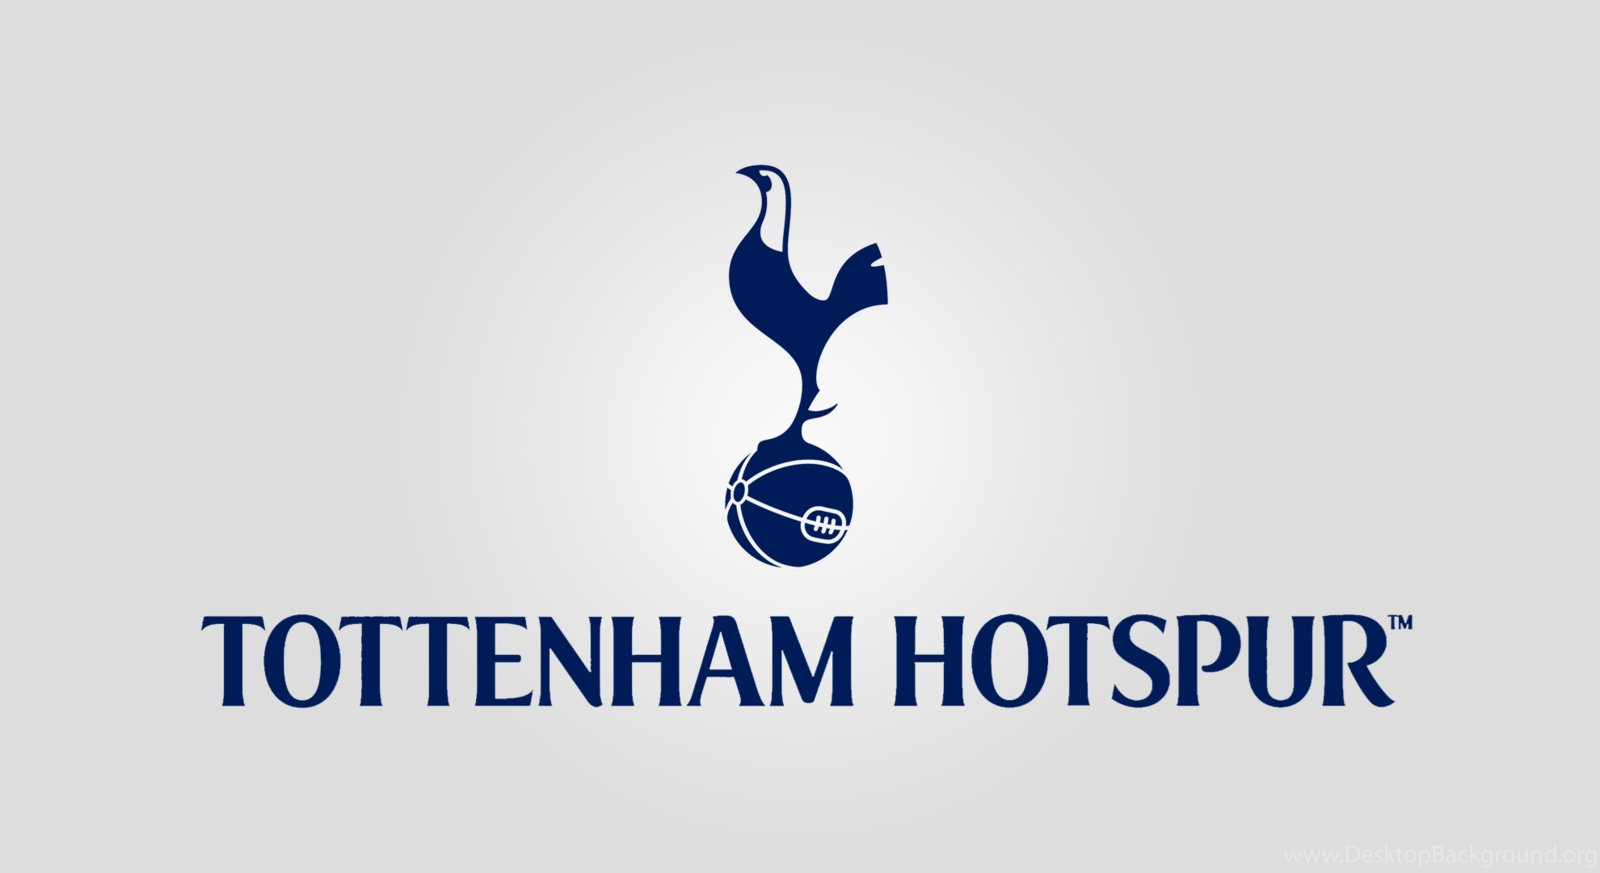 Tottenham Hotspur Wallpapers Hd Free Android Application Desktop Background